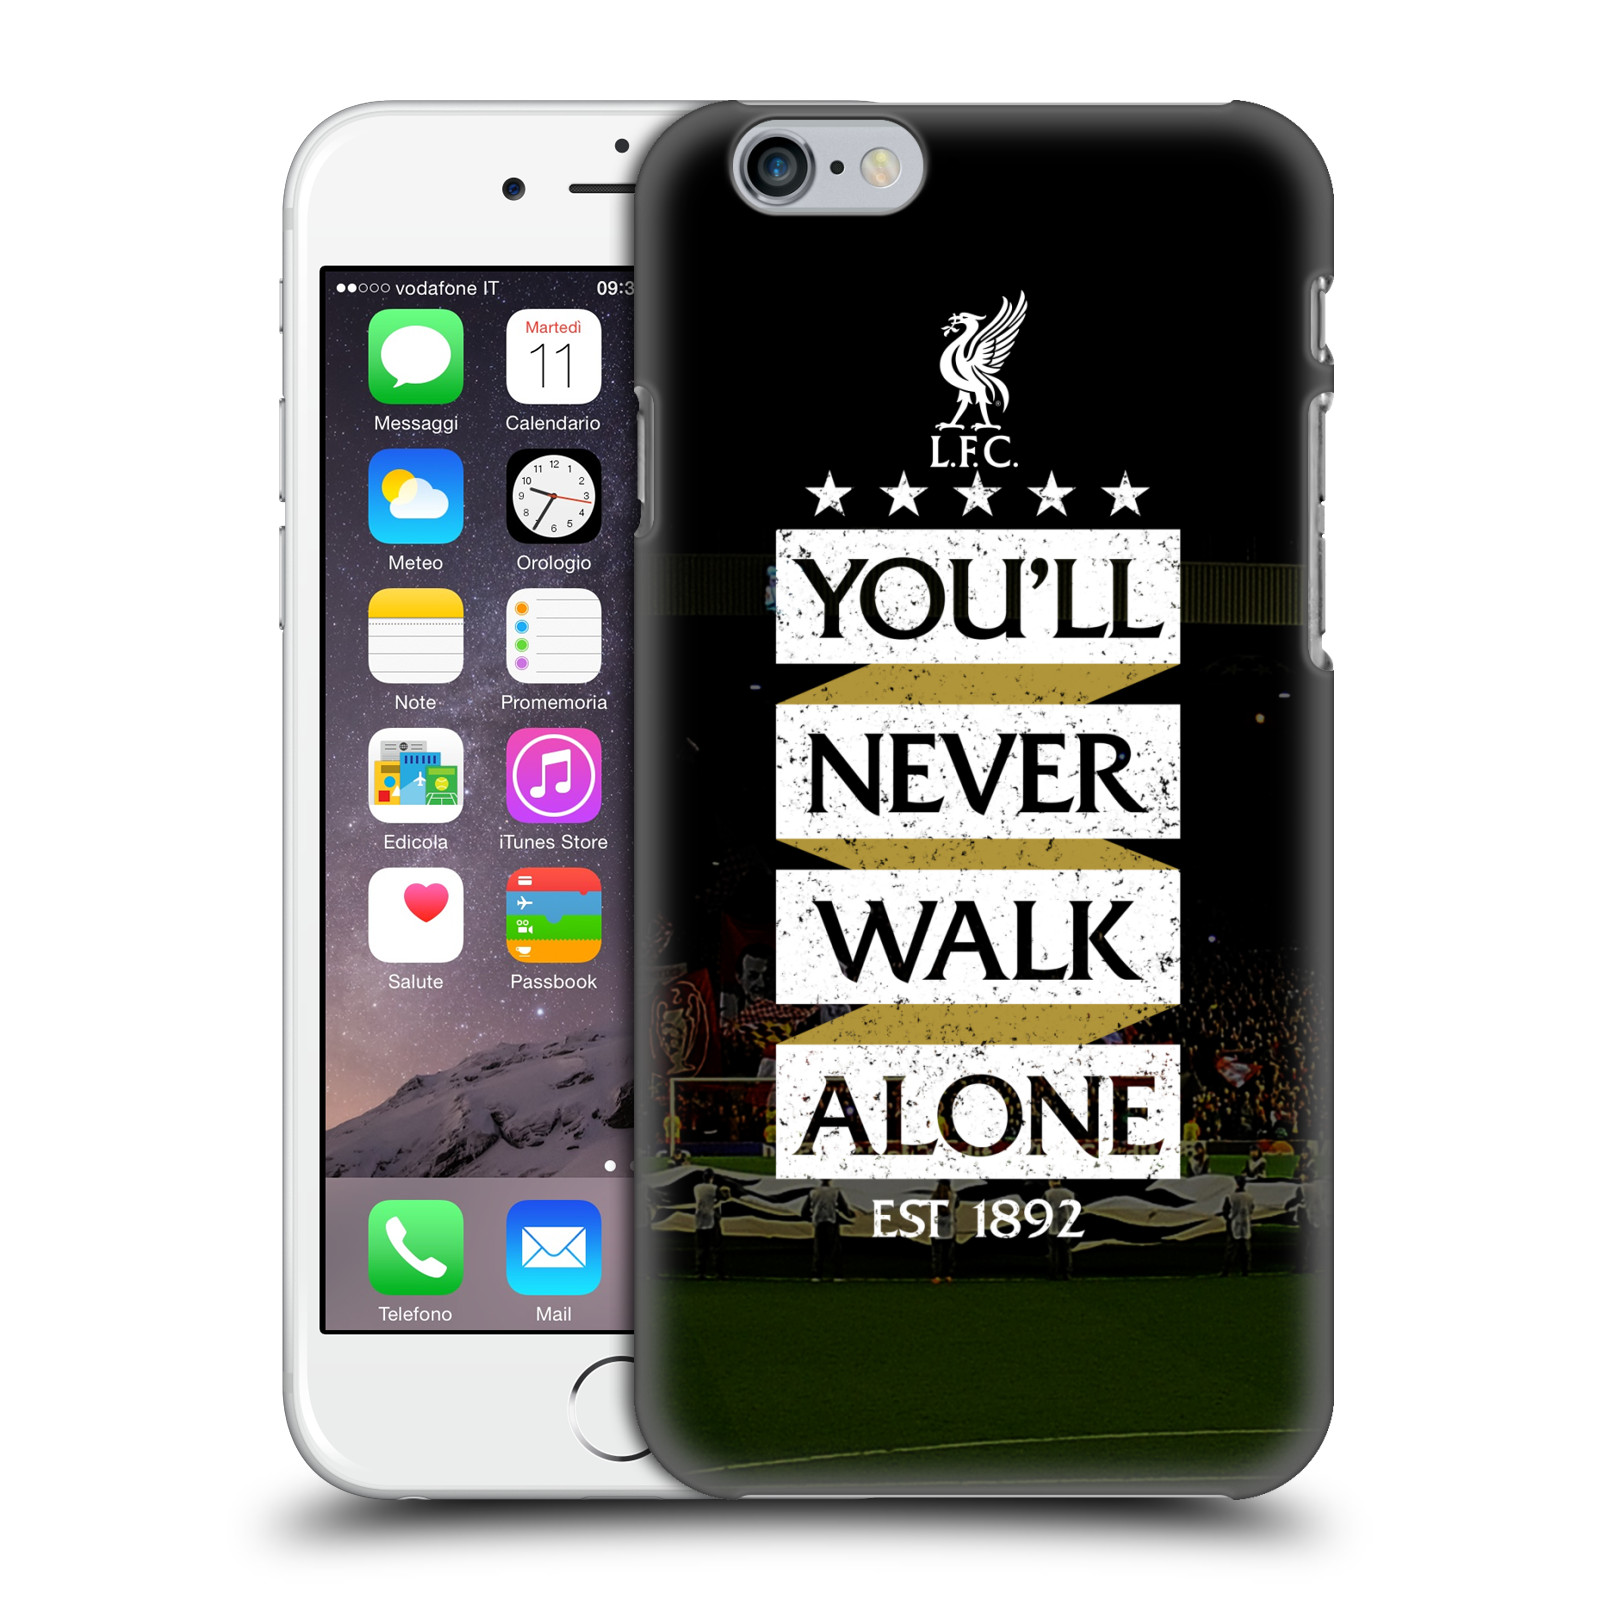 Liverpool FC LFC You'll Never Walk Alone-Kop 7